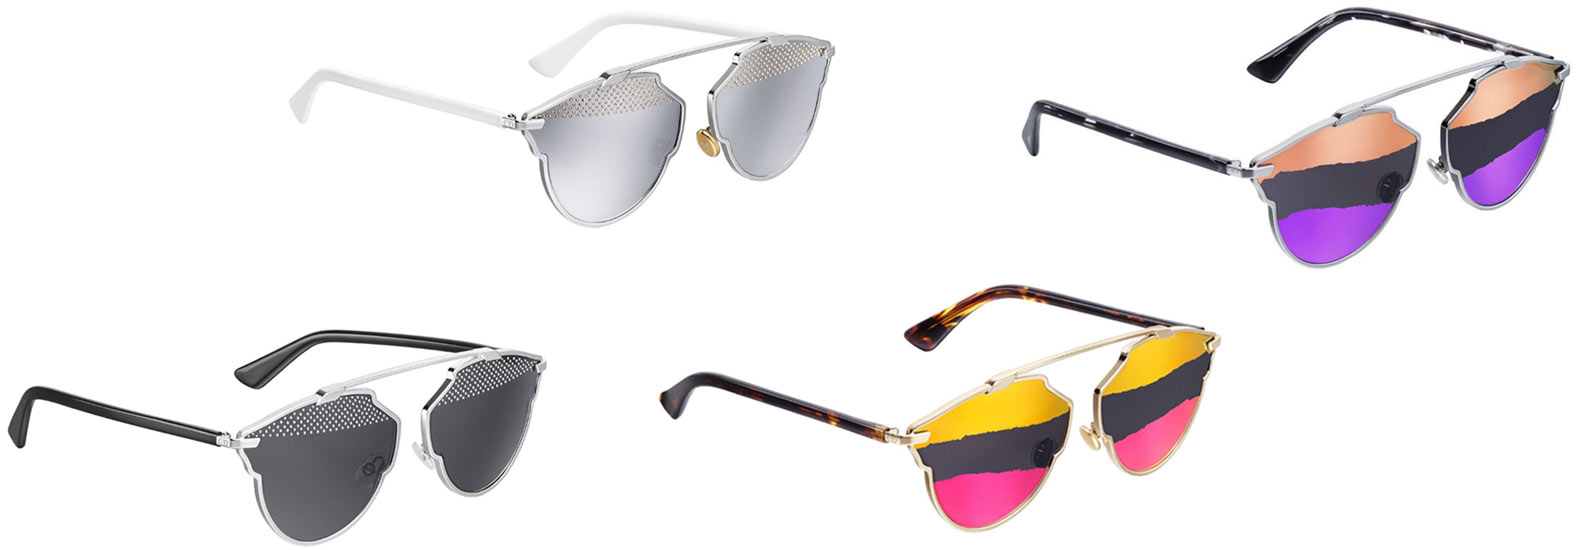 dior-so-real-sunglasses-pink-yellow-grey-silver-striped